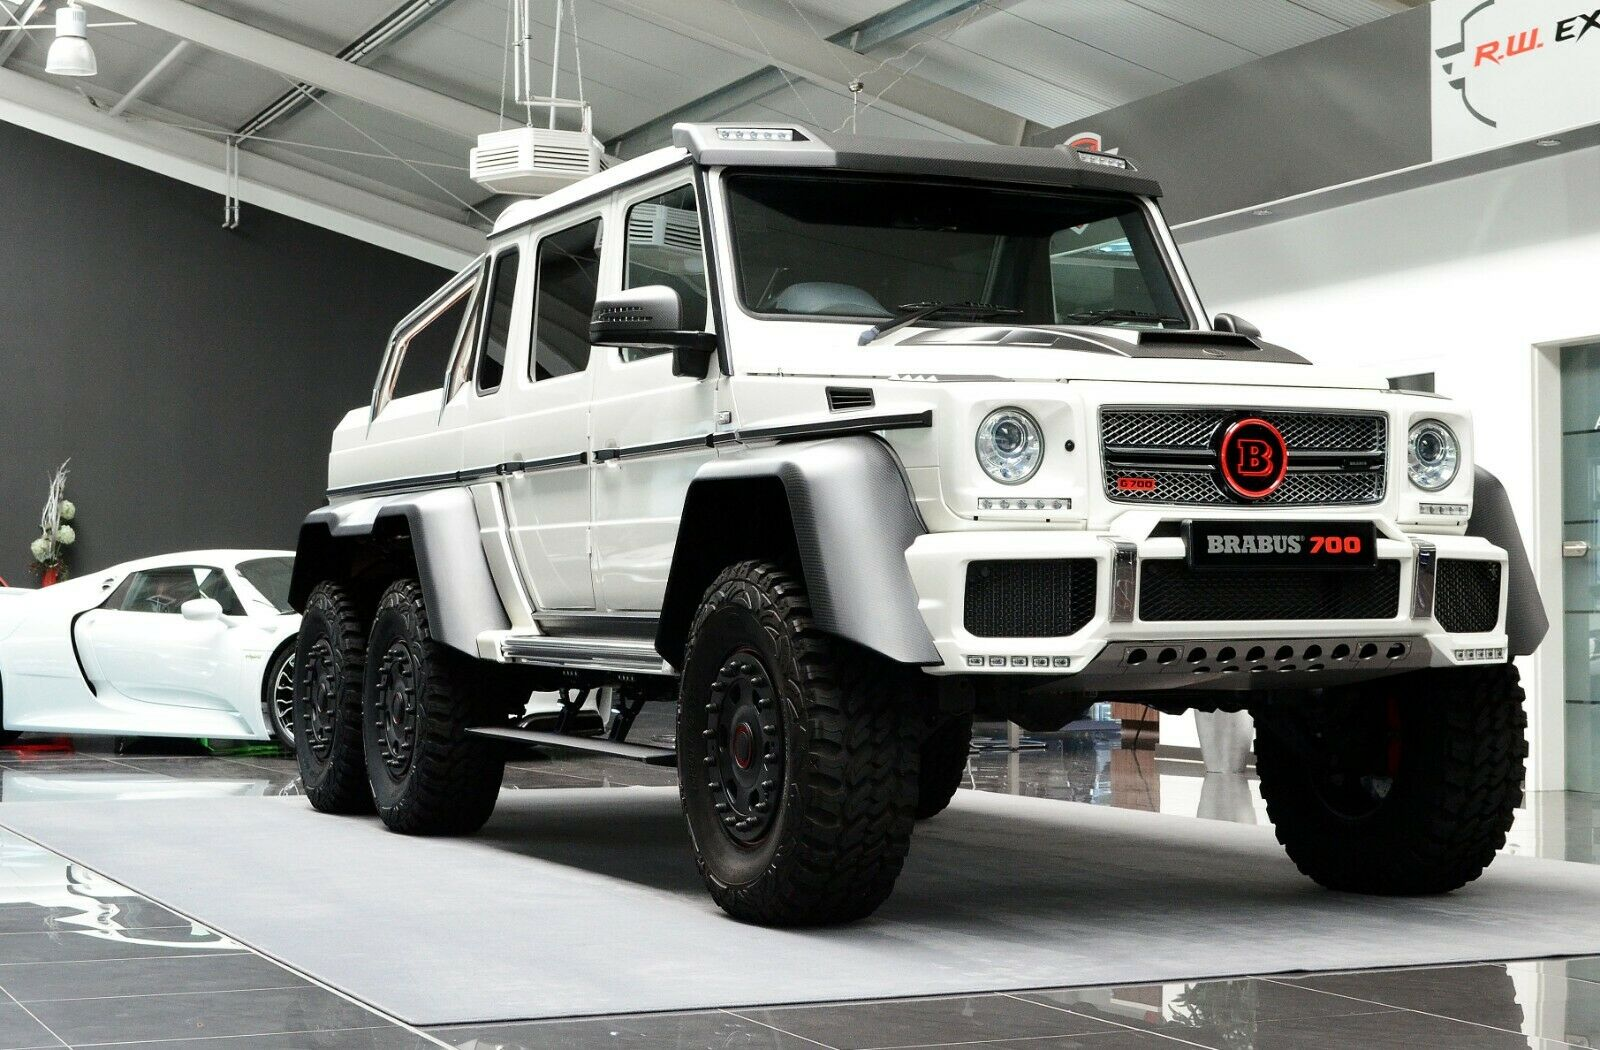 Mercedes Benz G 63 Amg 6x6 Brabus700 Luxury Pulse Cars Germany For Sale On Luxurypulse